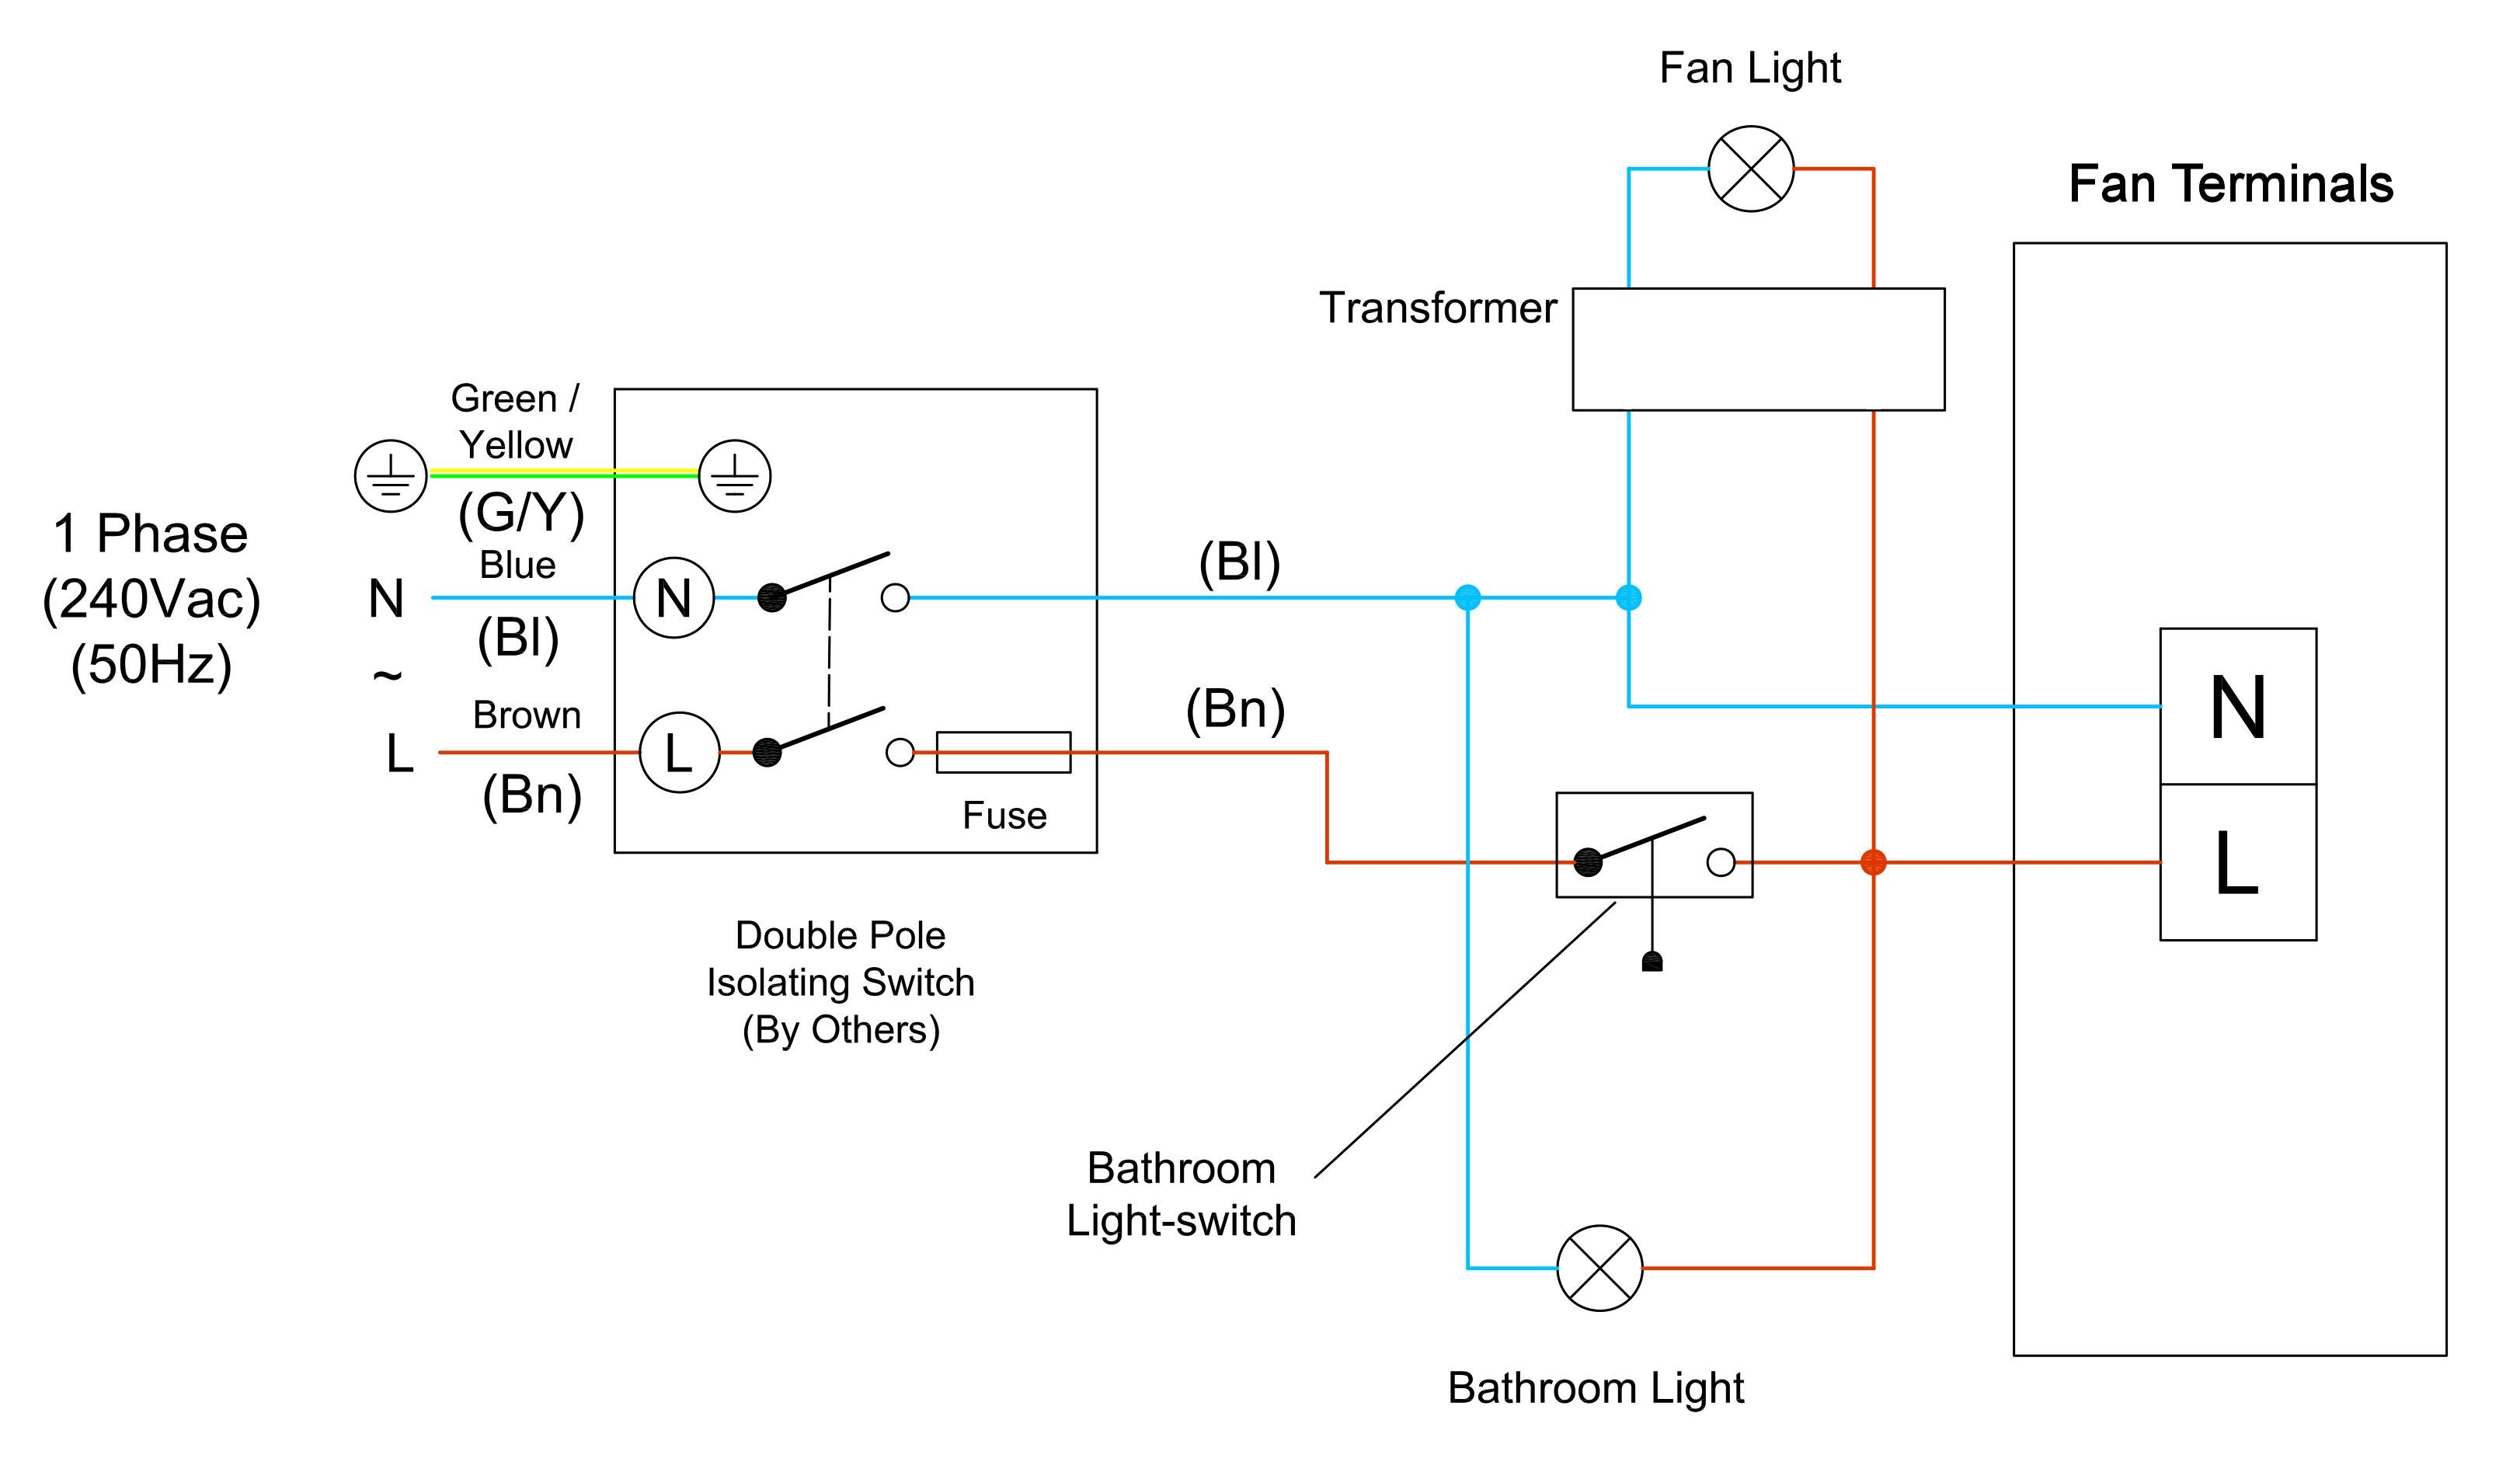 How to Wire Recessed Lighting Diagram Best Wiring A Bathroom Fan and Light Lighting Diagram Installing Heater